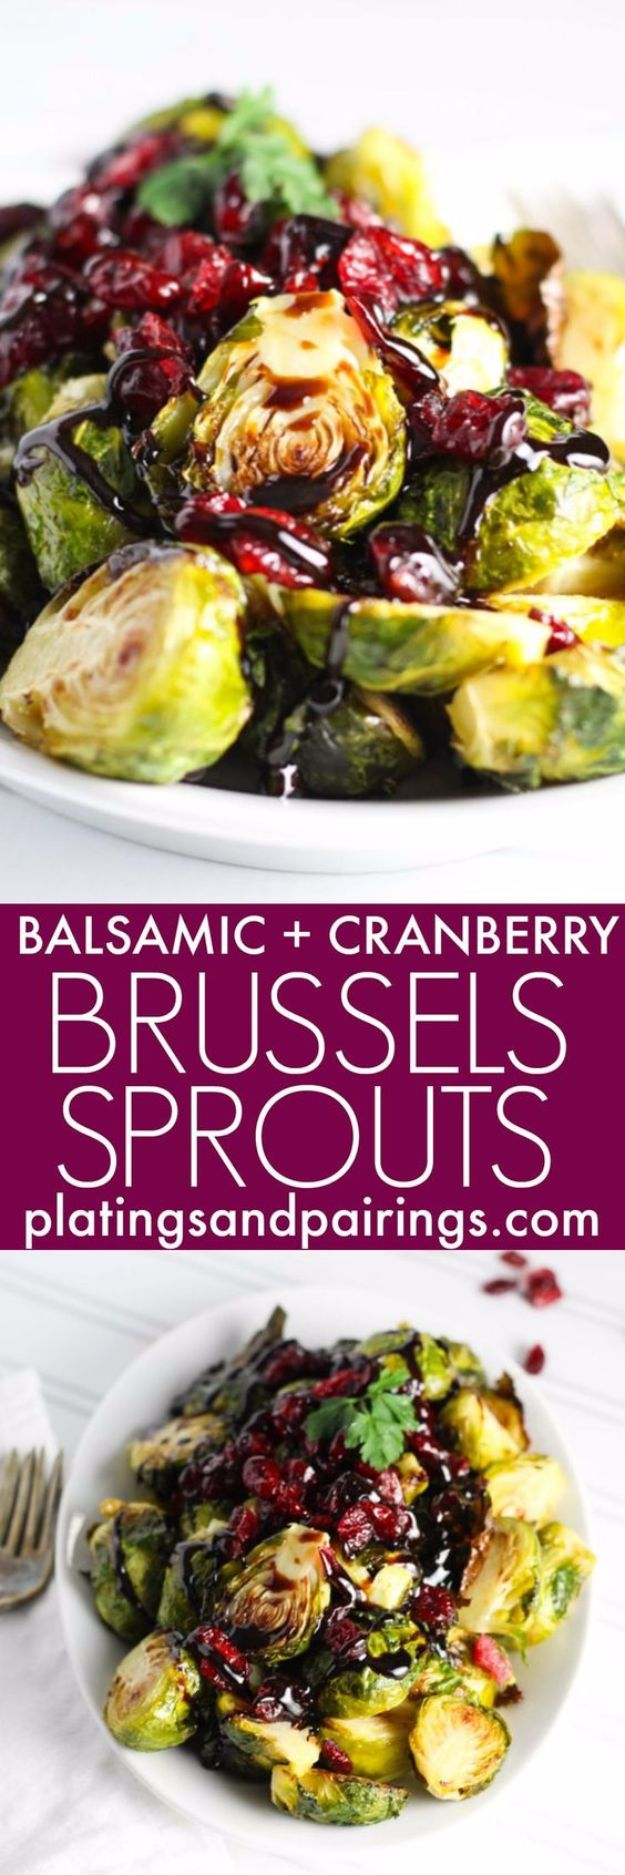 Best Thanksgiving Side Dishes - Roasted Brussels Sprouts With Cranberries And Balsamic Reduction - Easy Make Ahead and Crockpot Versions of the Best Thanksgiving Recipes #thanksgiving #recipes